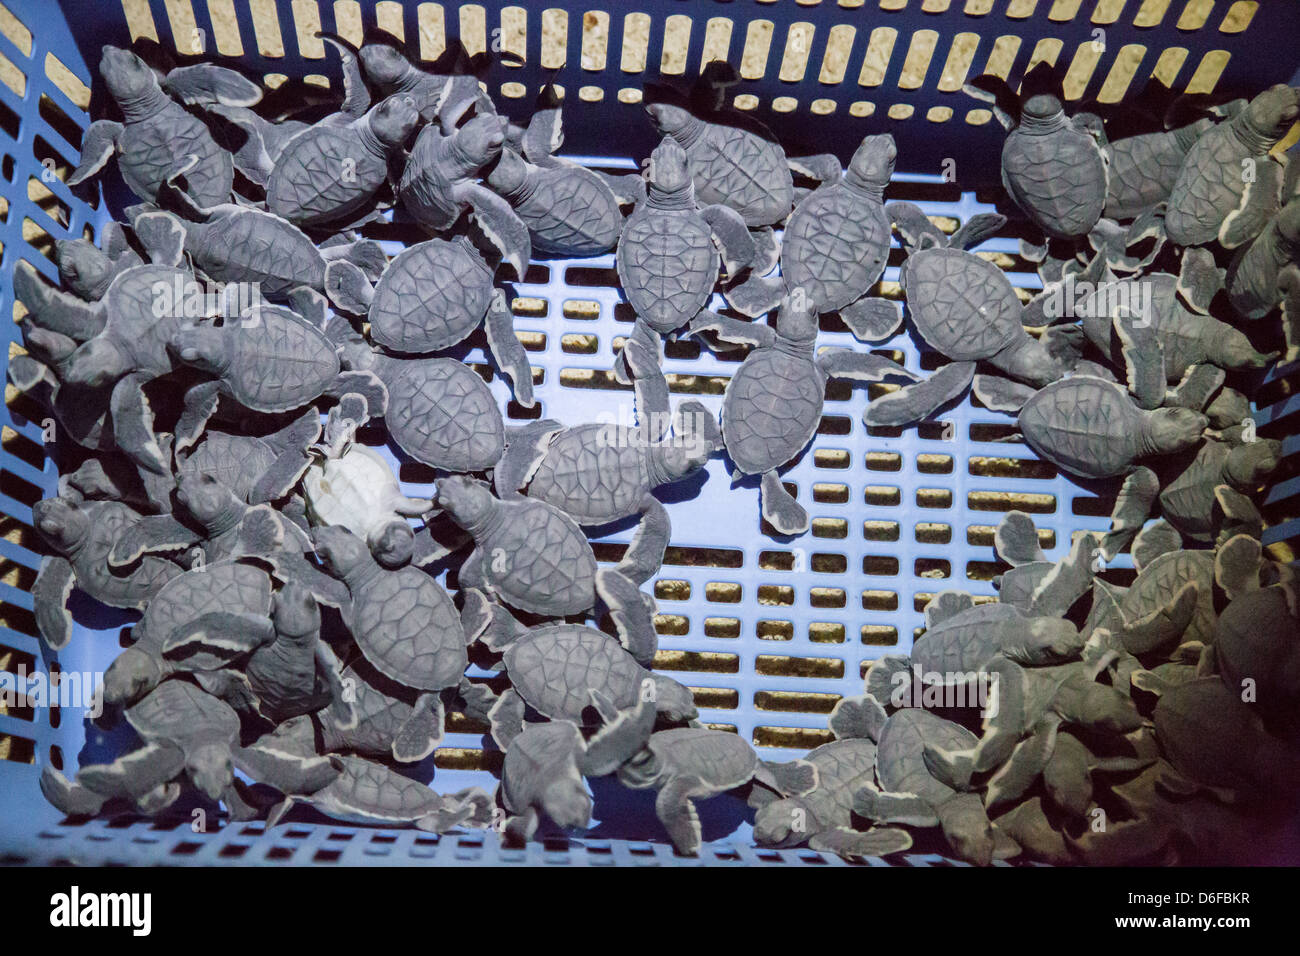 Newly hatched Green Turtles in a plastic bread basket waiting to be released into the sea on an island in Sabah - Stock Image